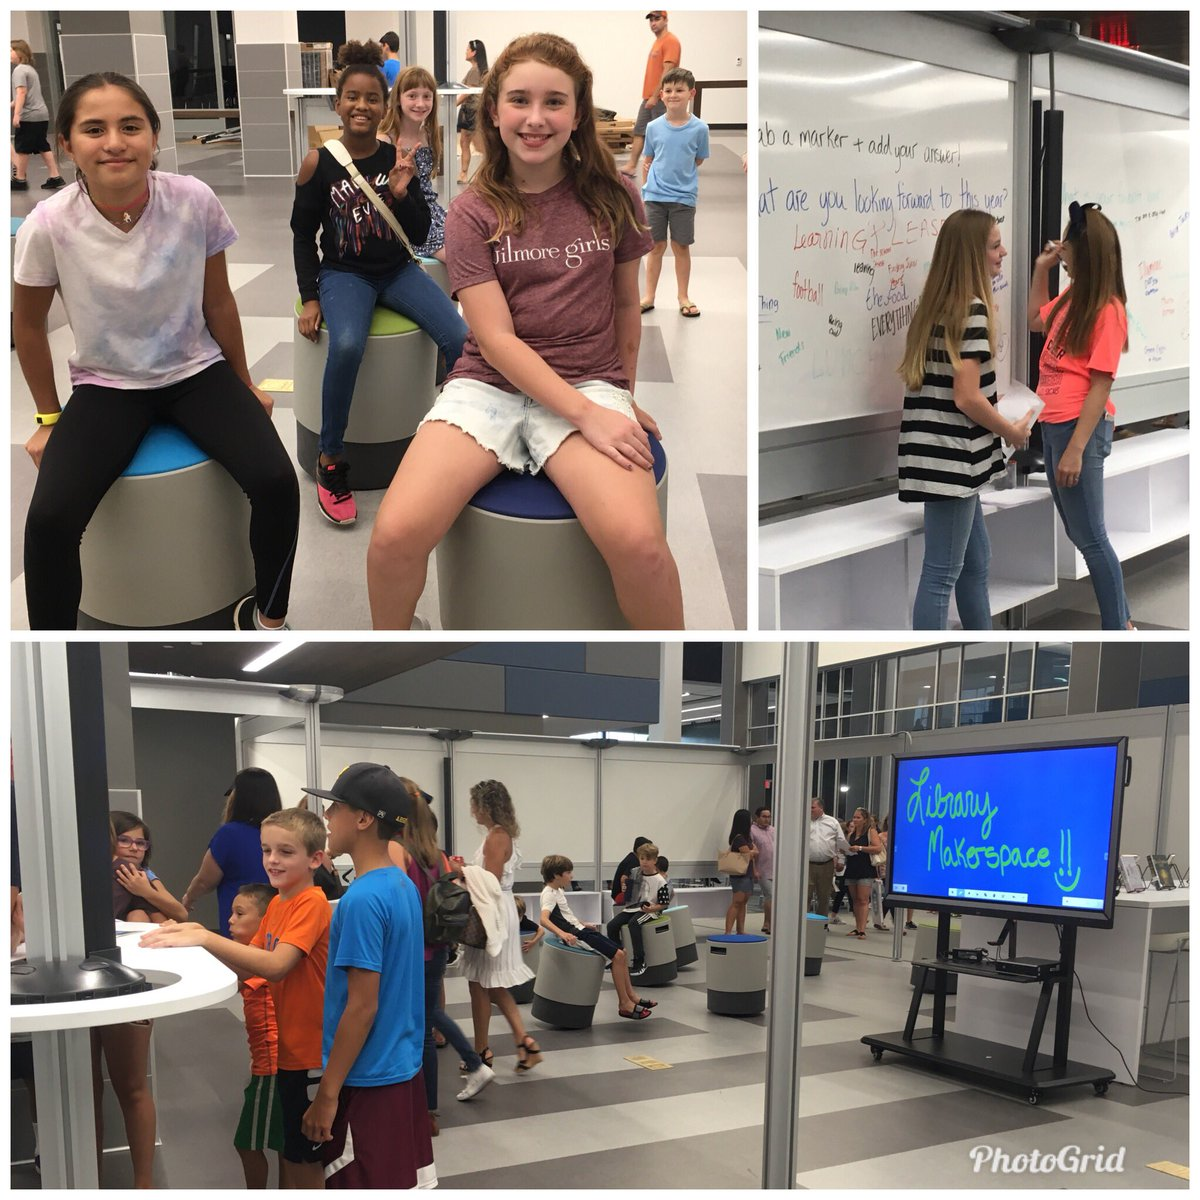 7th &amp; 8th graders enjoyed the library makerspace, a place for students to inquire, explore, design, &amp; create! See you again soon, Hawks! @HofiusKISD #hawksinthehouse #librarypromise #momentsinklein<br>http://pic.twitter.com/2ZLl2cQJ1j